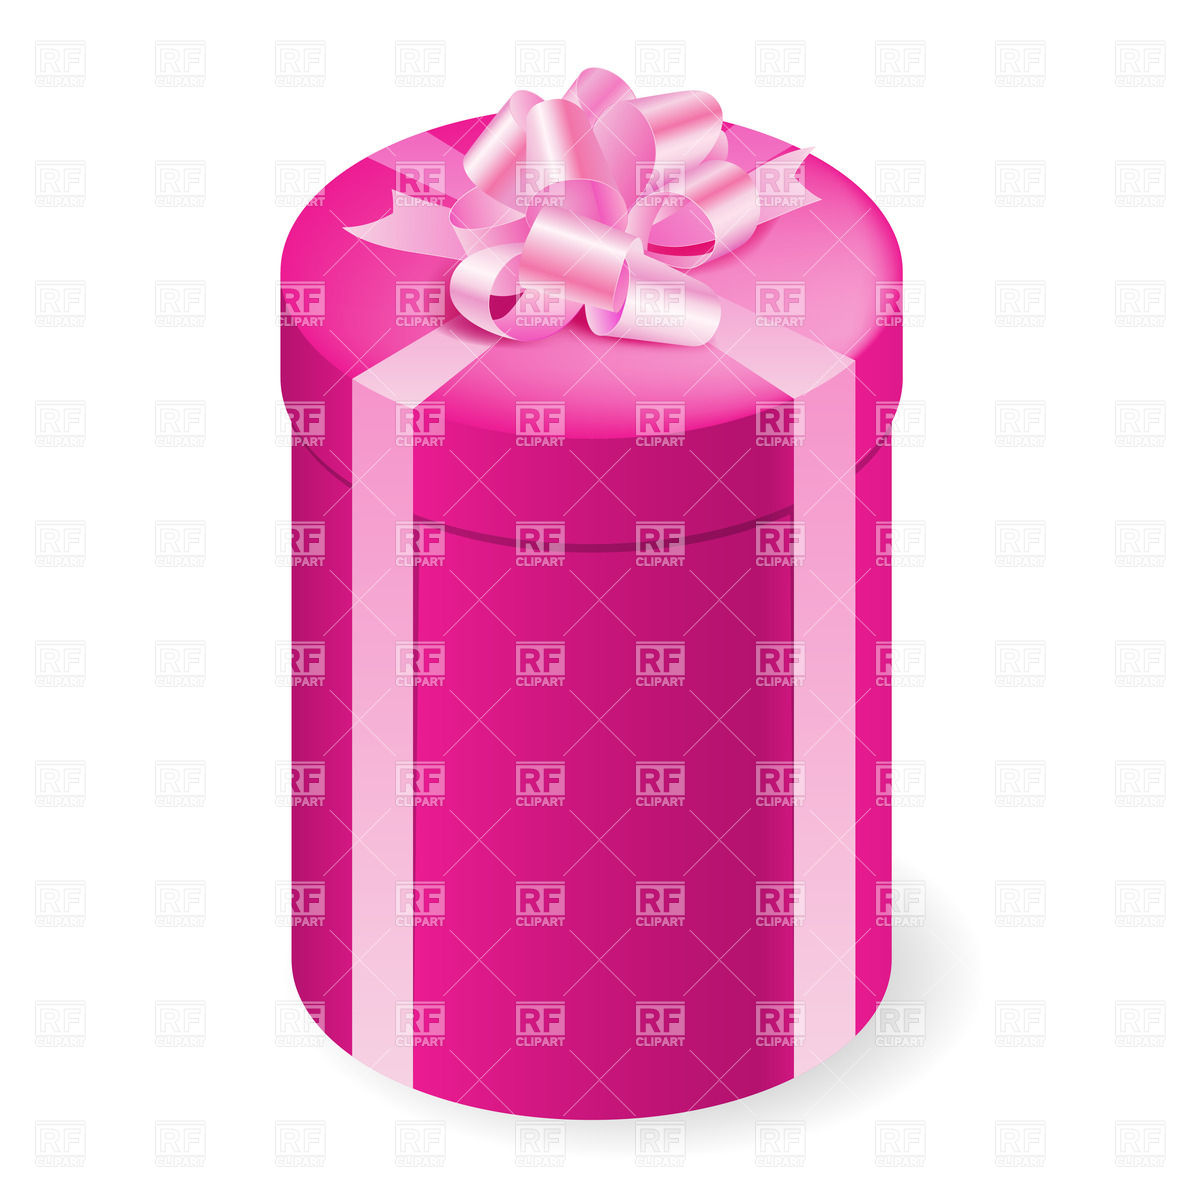 1200x1200 Round Tall Gift Box With Pink Bow Vector Image Vector Artwork Of